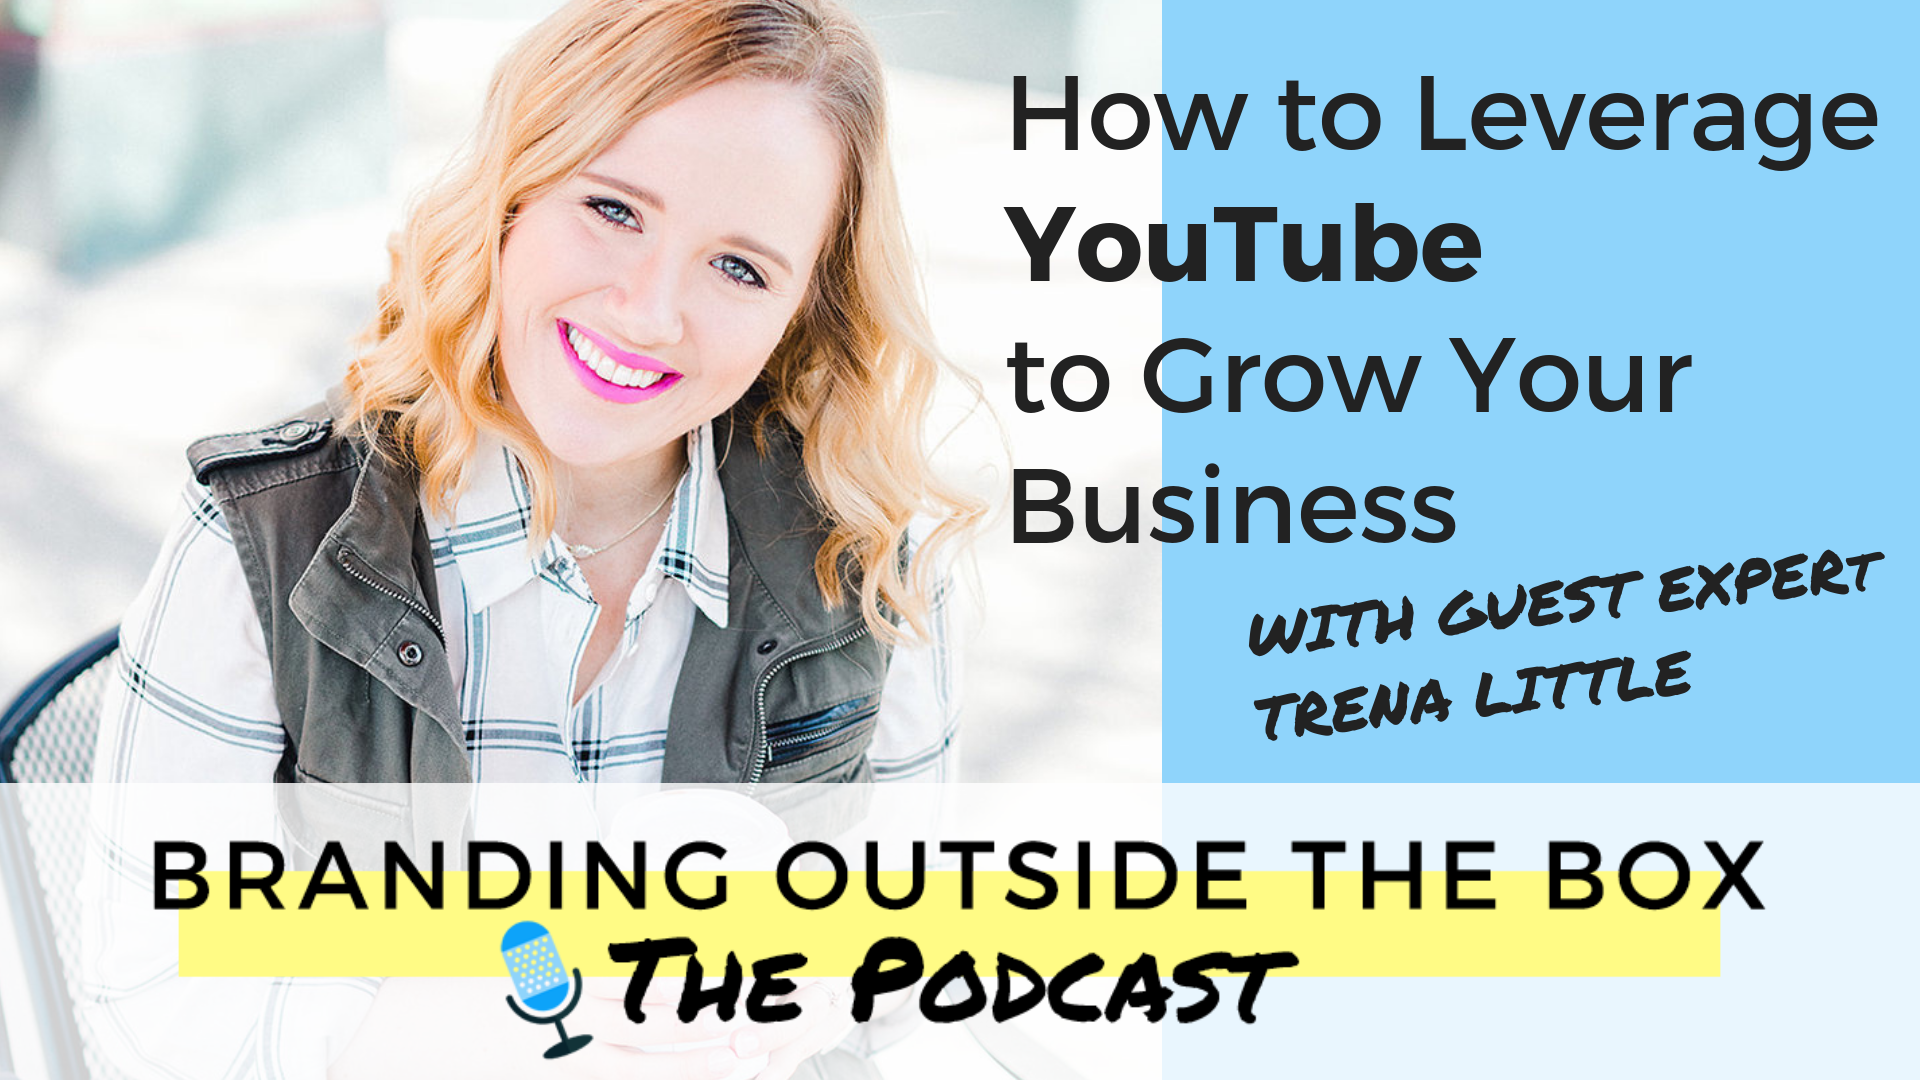 How to Leverage YouTube to Grow Your Business with Trena Little